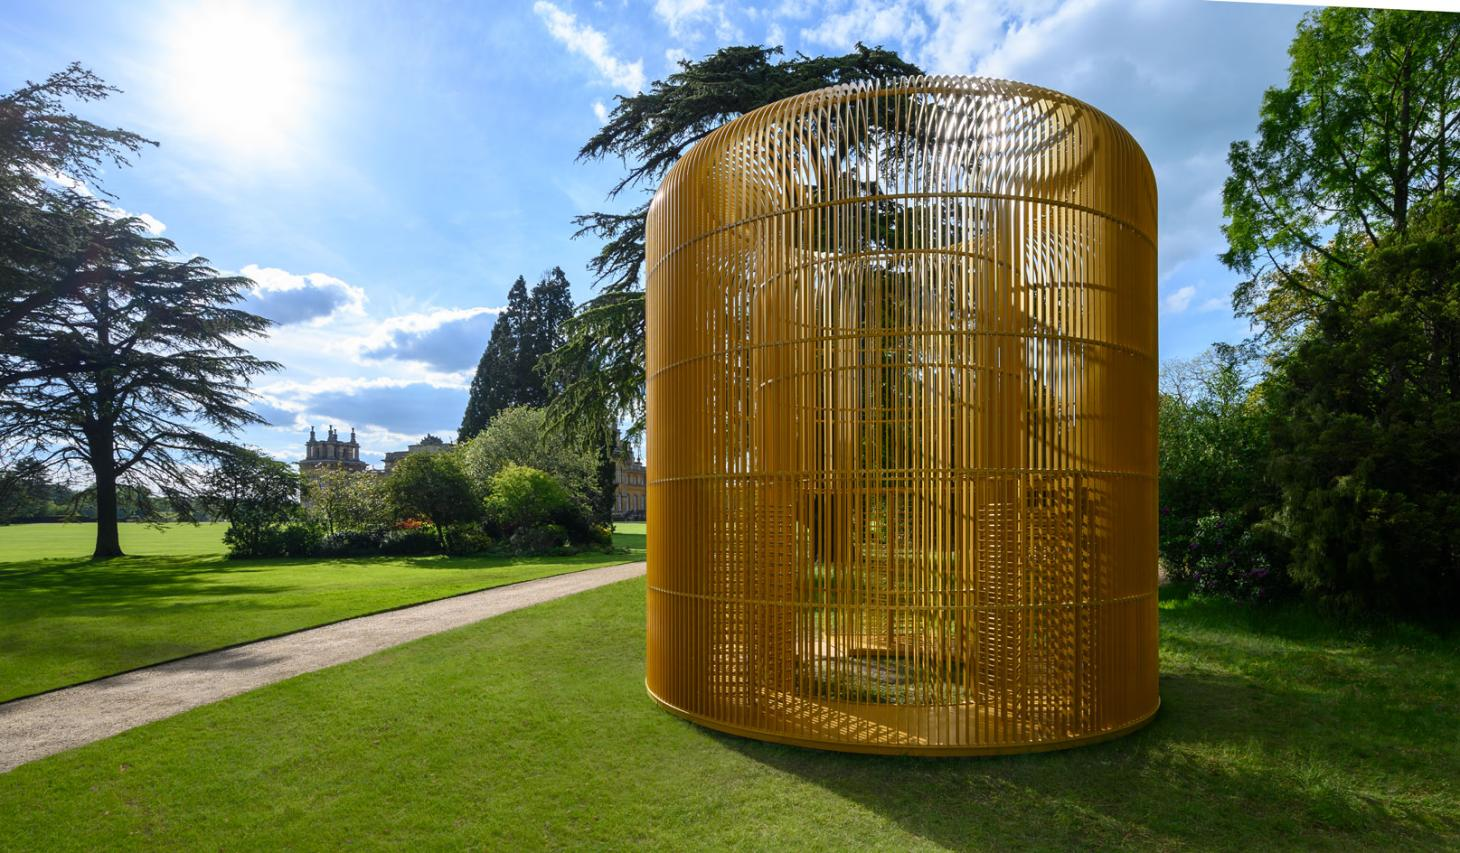 Ai Weiwei,Gilded Cage (2017), a gold metal sculpture which explores the refugee crisis.Photography: Pete Seaward, courtesy of Blenheim Art Foundation